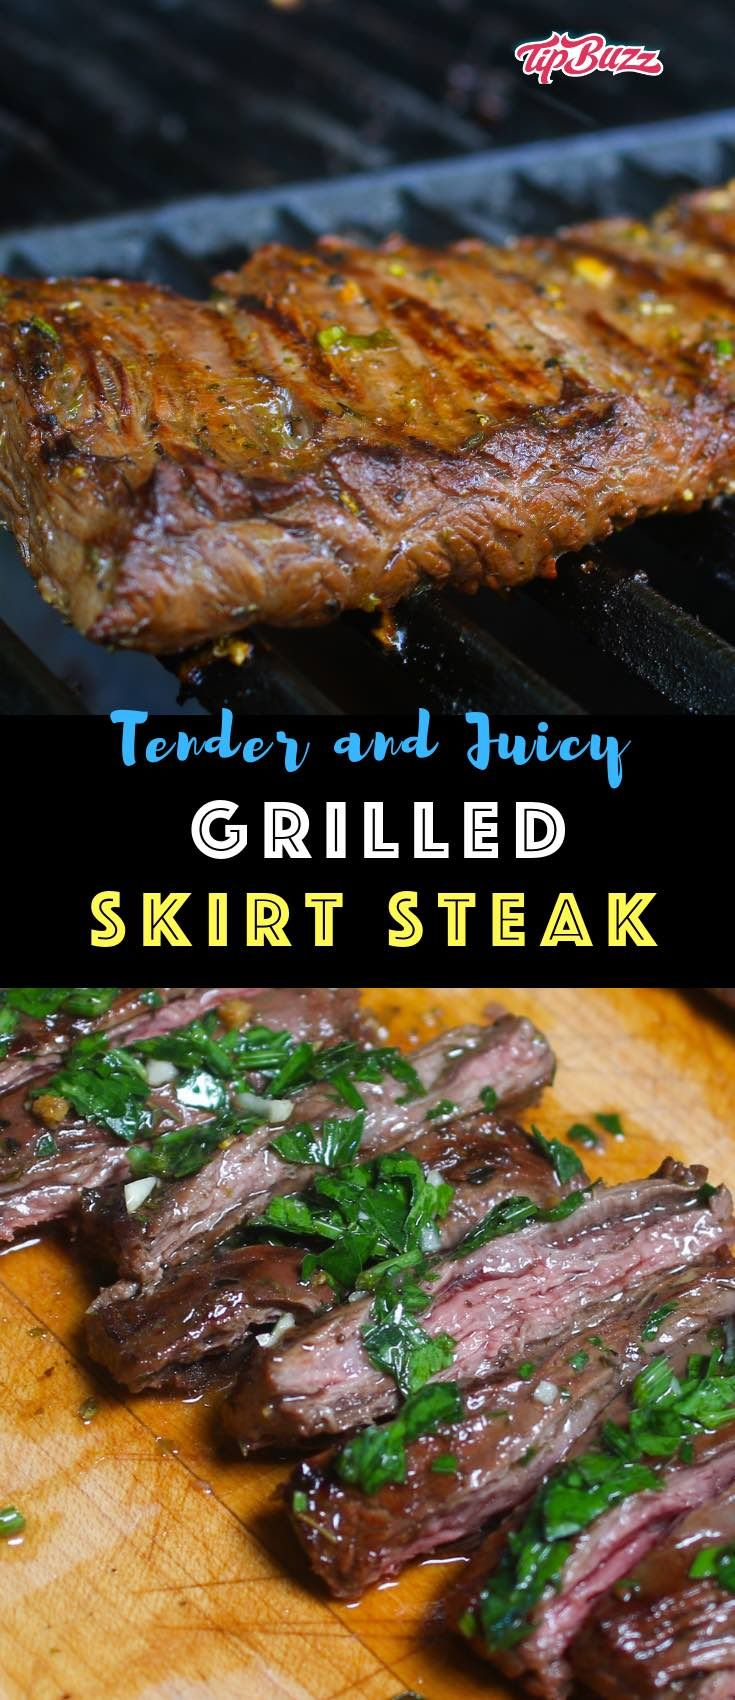 Skirt Steak is melt-in-your mouth delicious with a tender and juicy texture. A simple trick to get the best-tasting skirt steak recipe is marinating the meat prior to grilling or pan-searing. A quick garlic and lime marinade infuses plenty of flavor while tenderizing the steak for an amazing dinner! #marinadeforskirtsteak